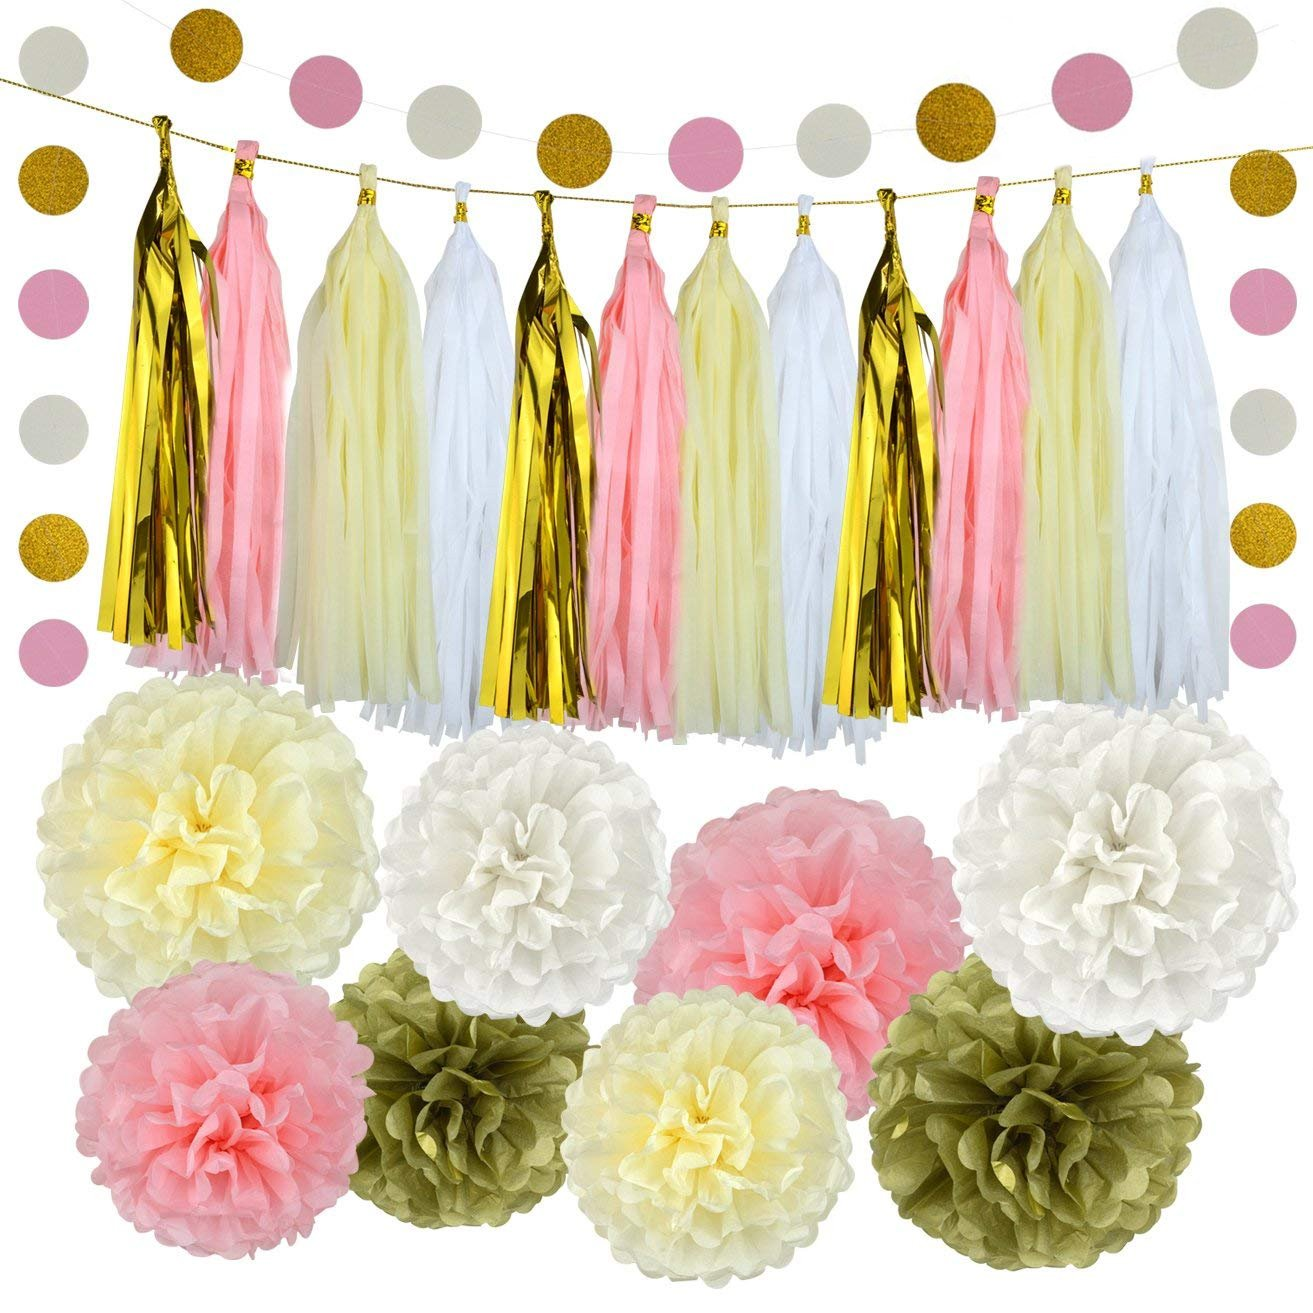 Pistha 30 PCS Bachelorette Party Decorations Party Decoration Paper 8 PCS Tissue Paper Pom Pom 20 PCS Tissue Tassel 2 PCS Garland Polka Dot Paper with Some Golden Lines 4336867201